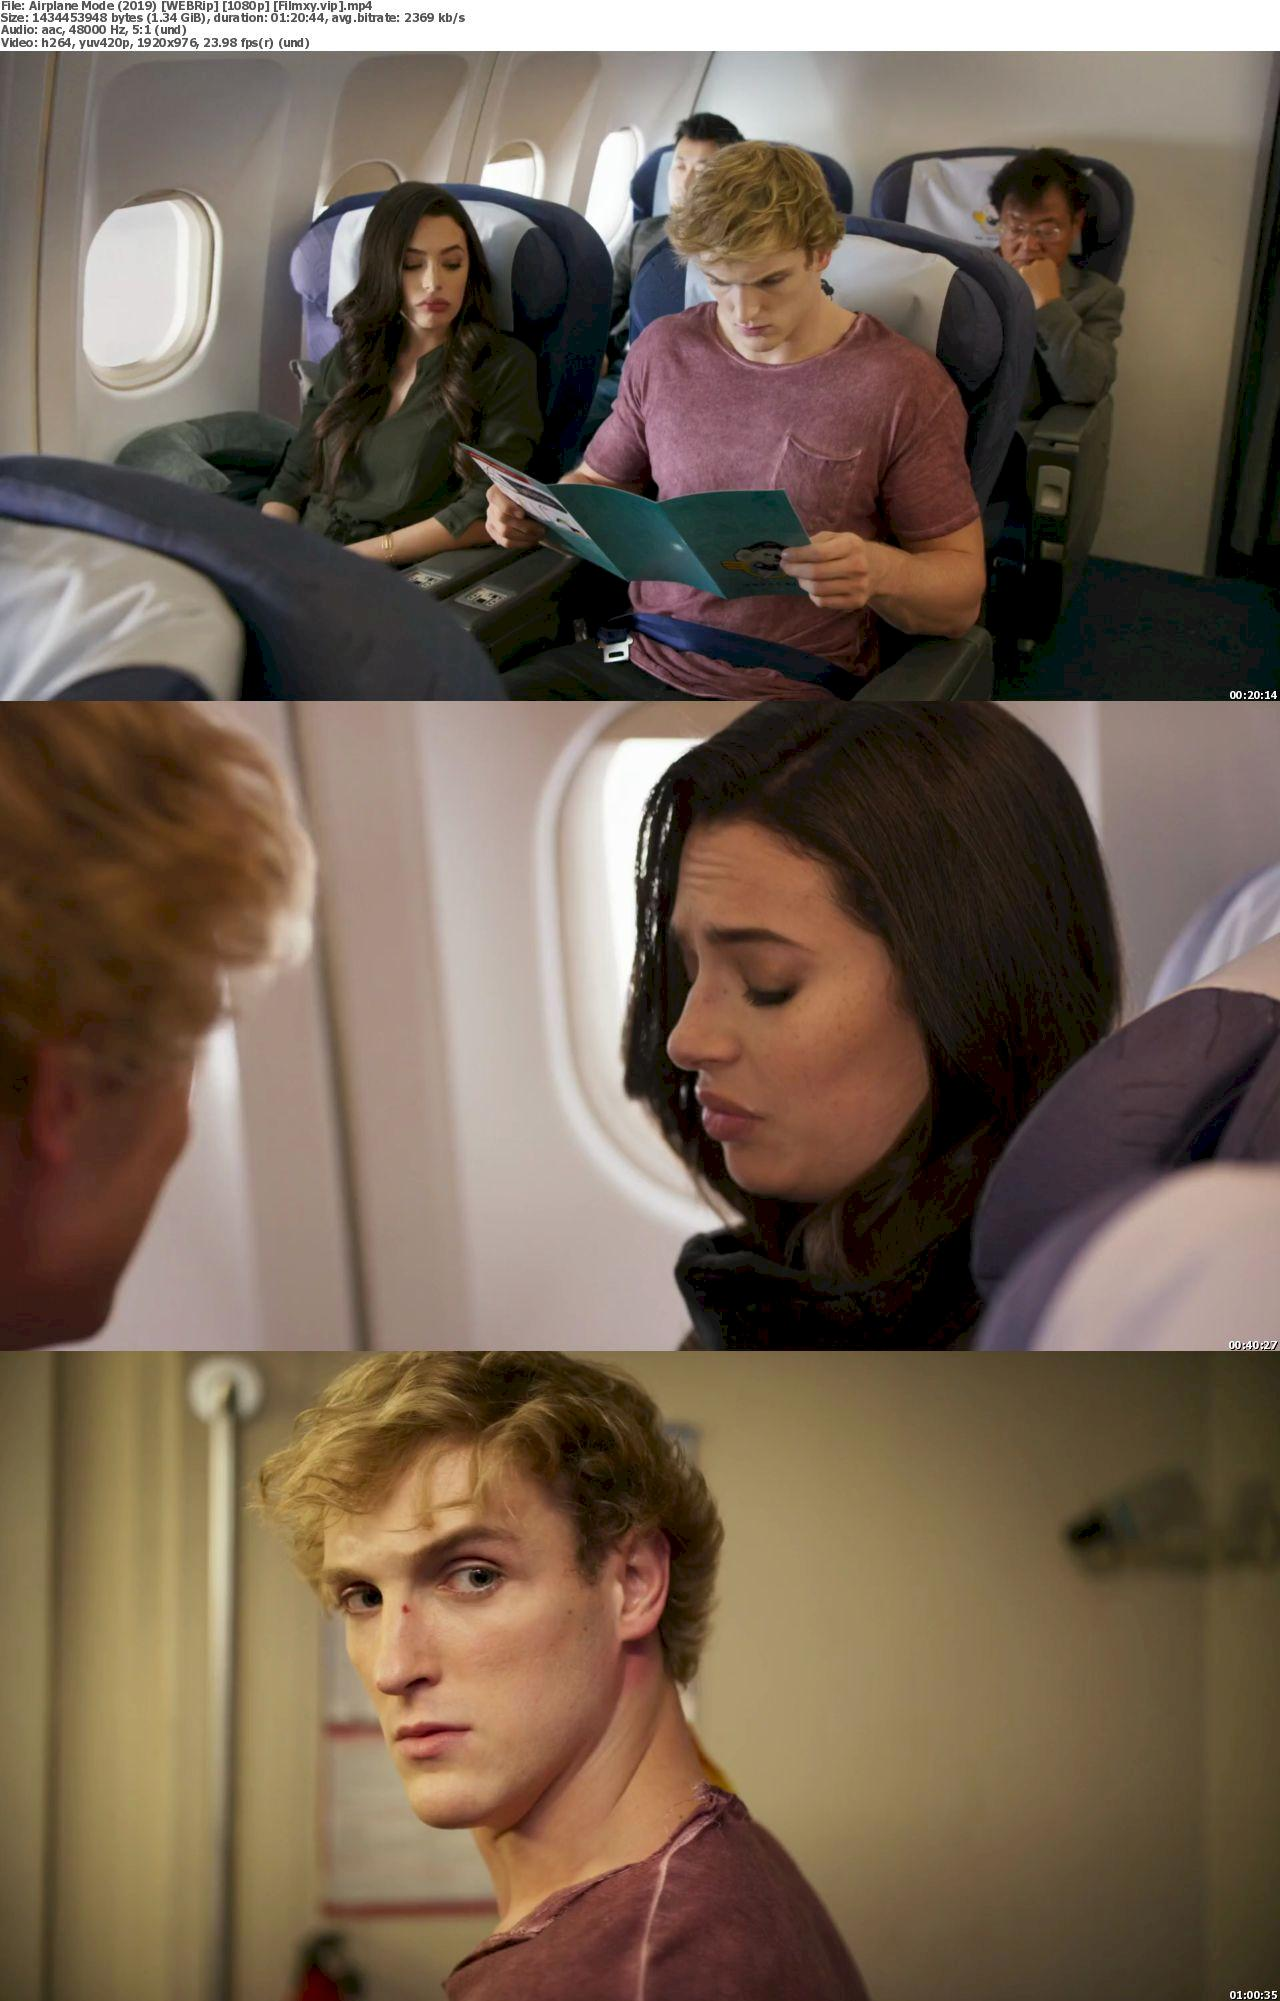 Airplane Mode (2019) [720p & 1080p] WEB-Rip Free Movie Watch Online & Download 1080p Screenshot